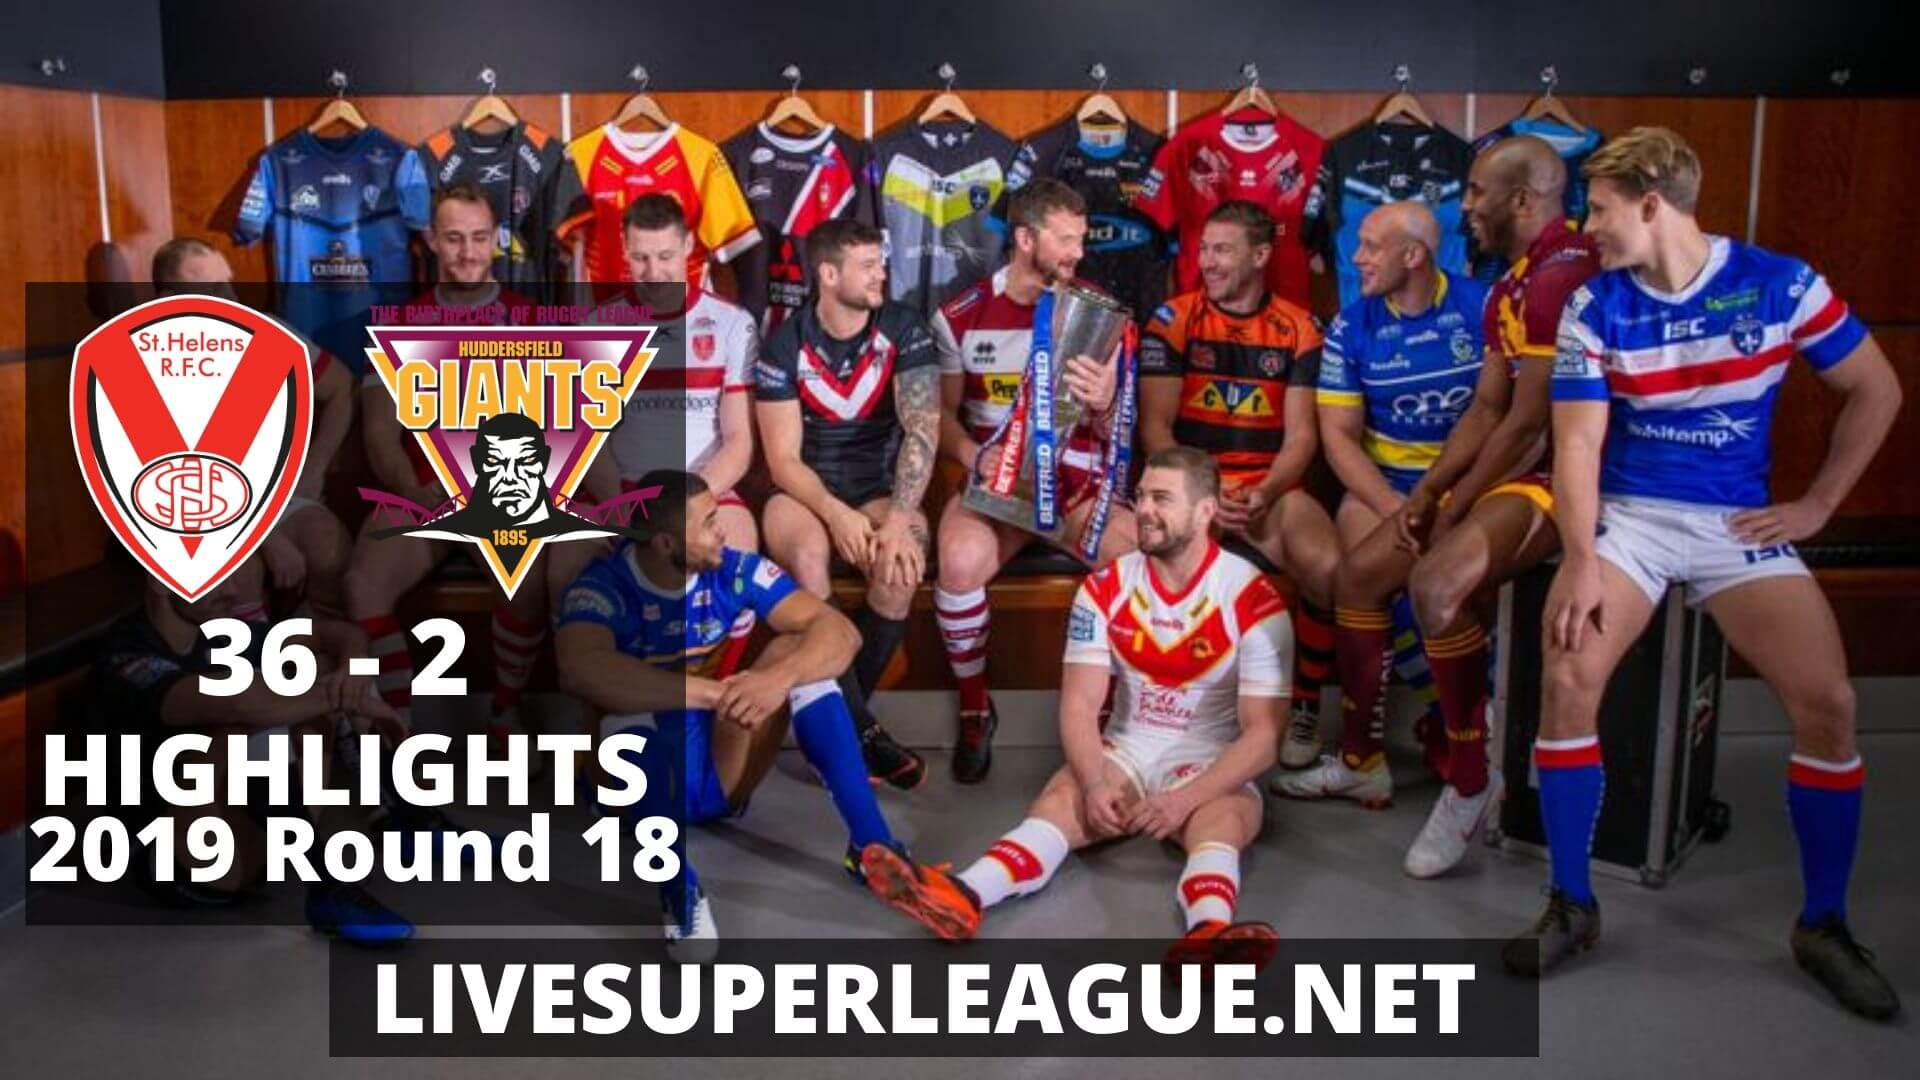 St Helens Vs Huddersfield Giants Highlights 2019 Round 18